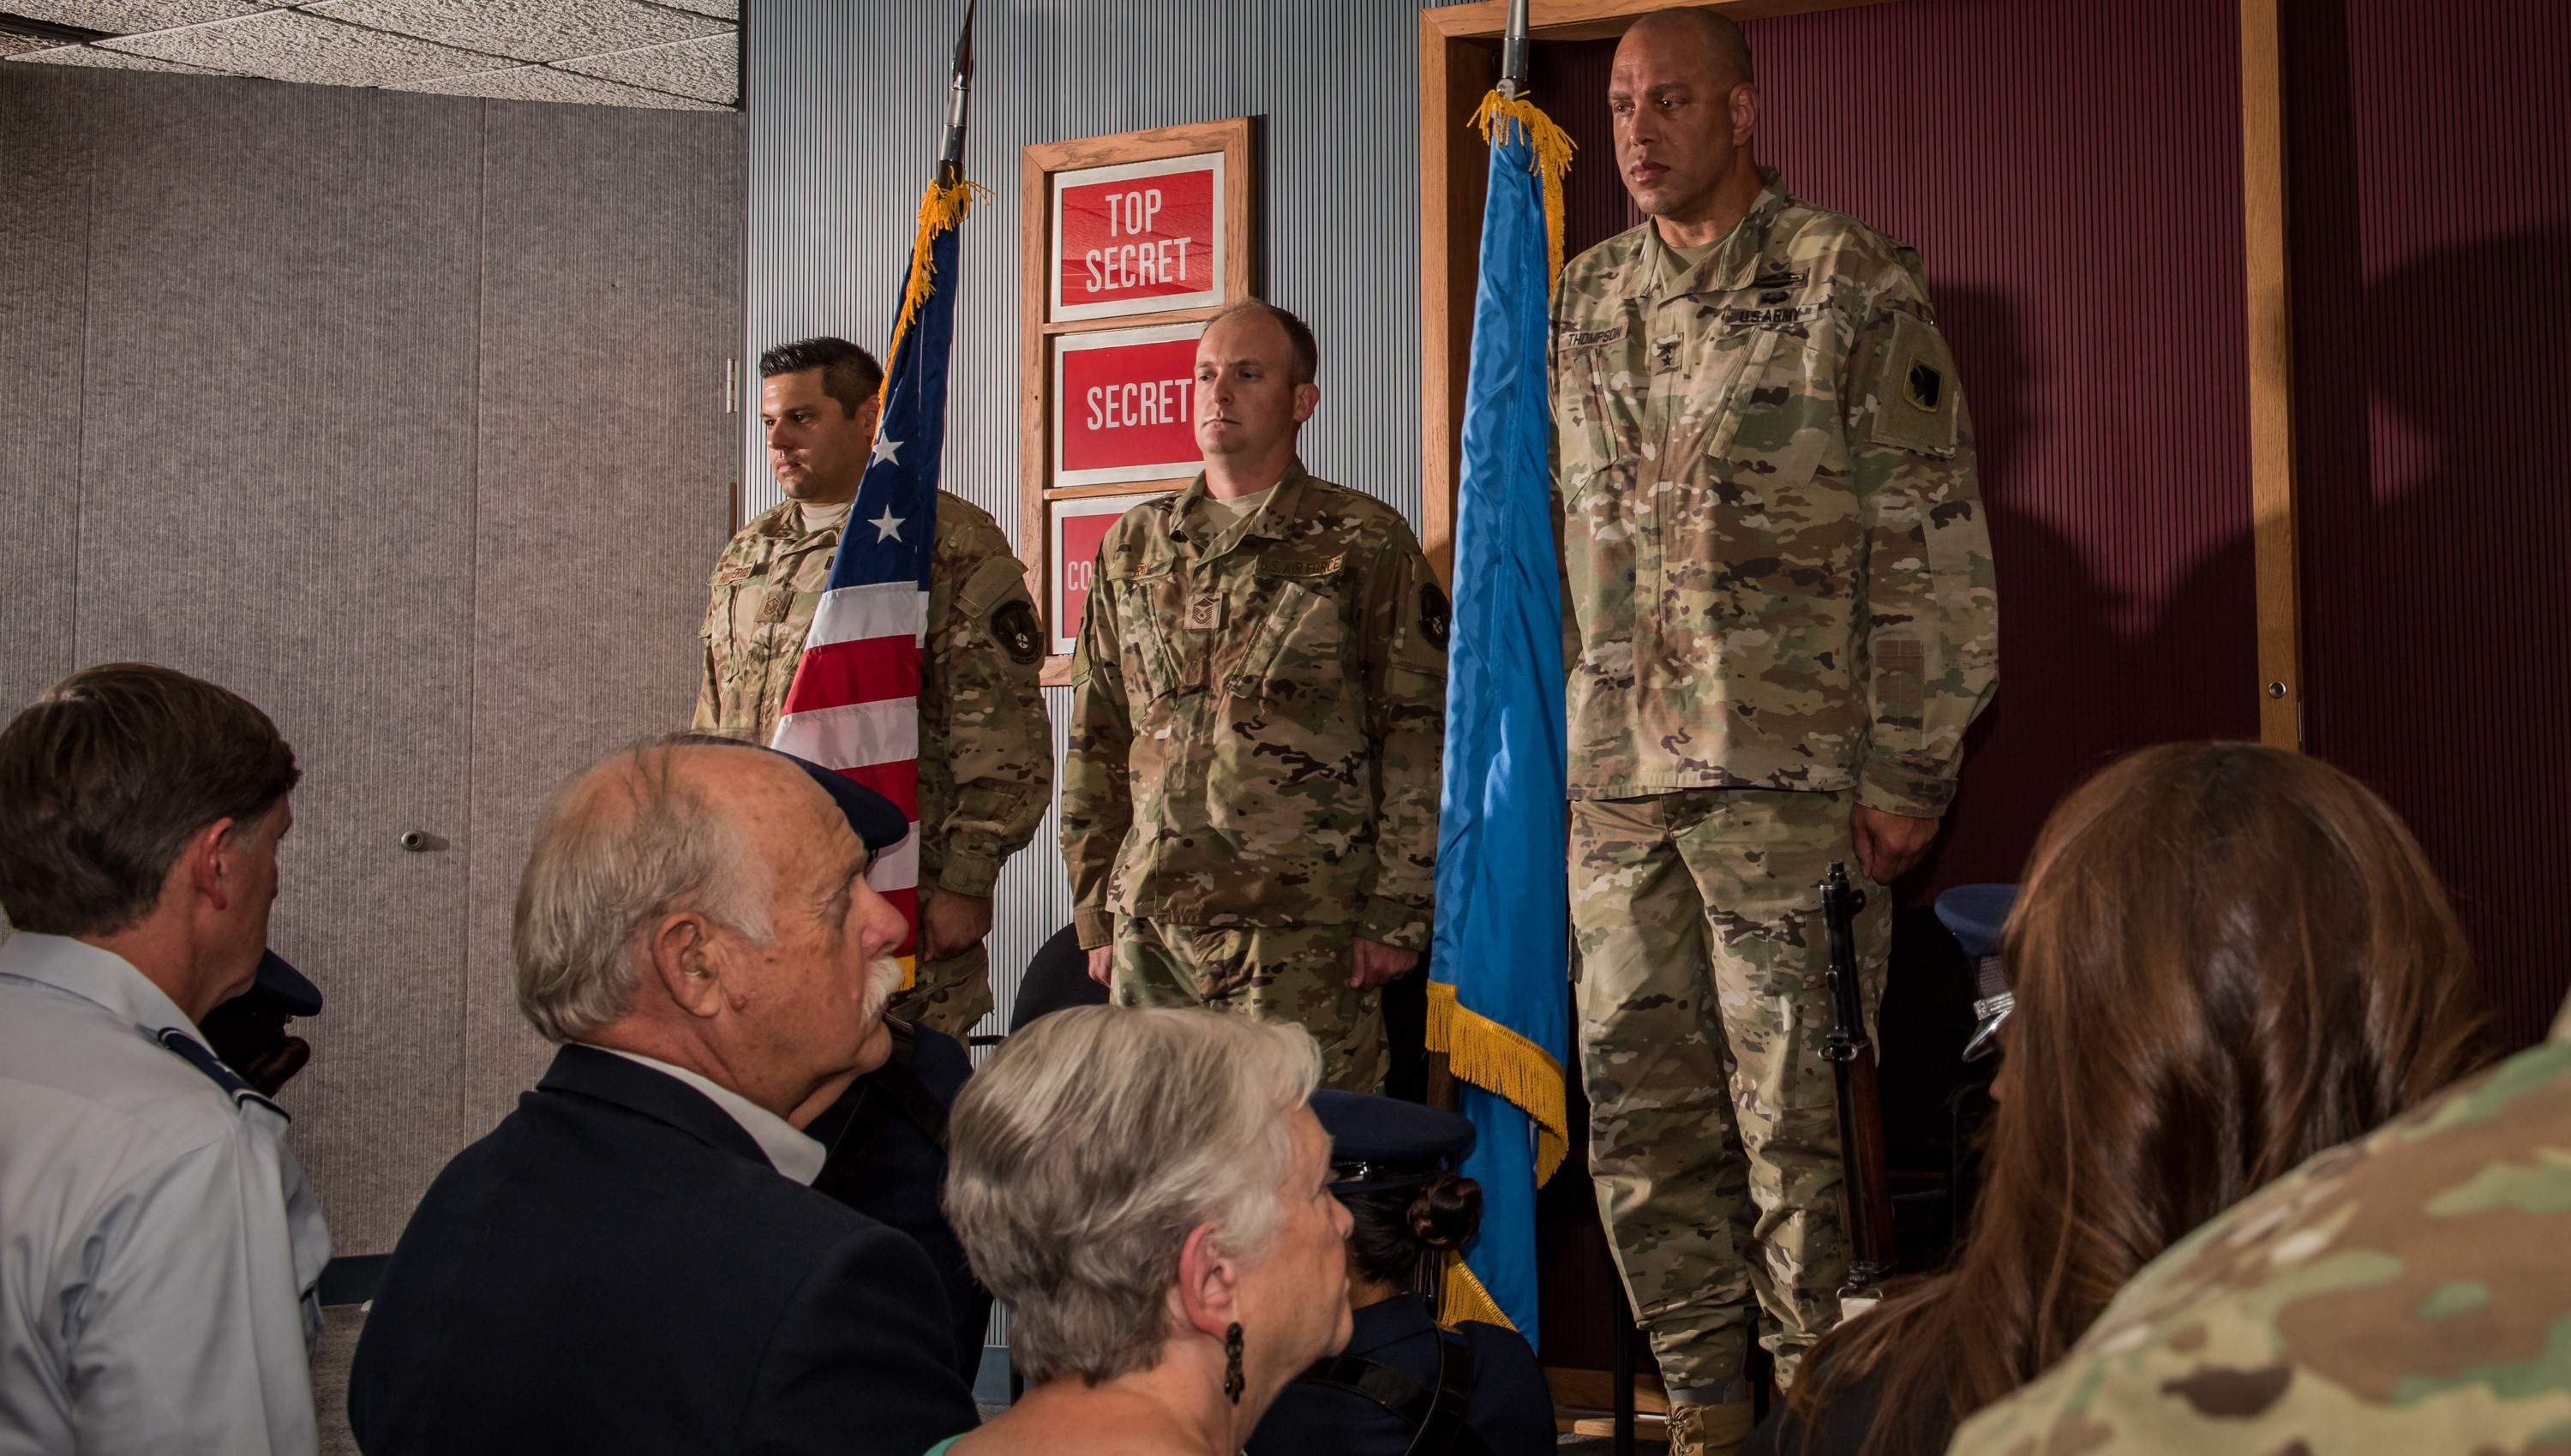 137th SOW Airmen receive Oklahoma Star of Valor after rescue